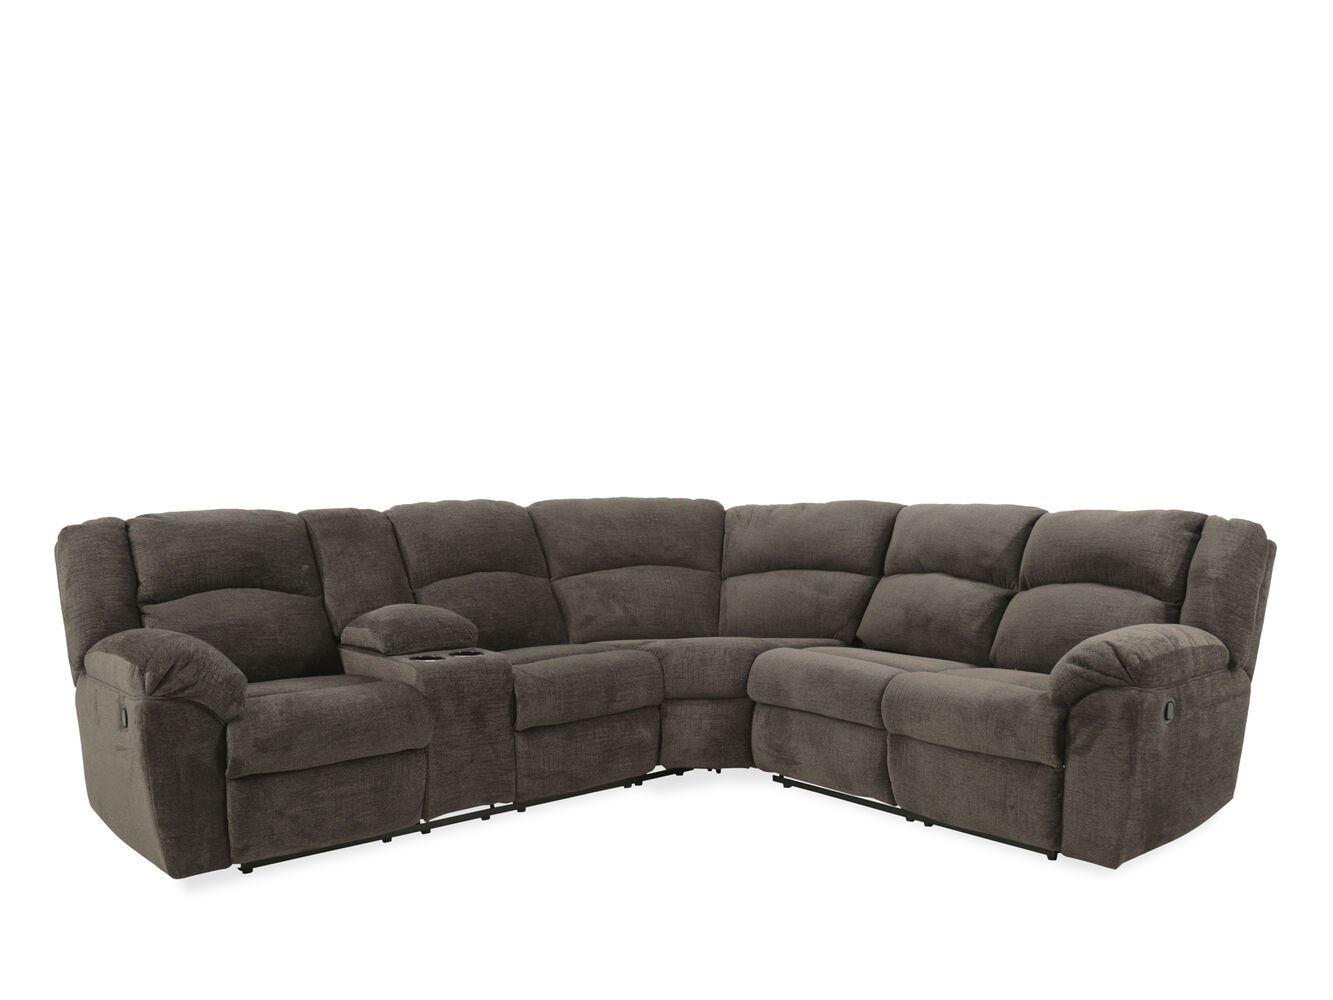 Ashley Benchcraft Timpson Slate Reclining Sectional Sofa